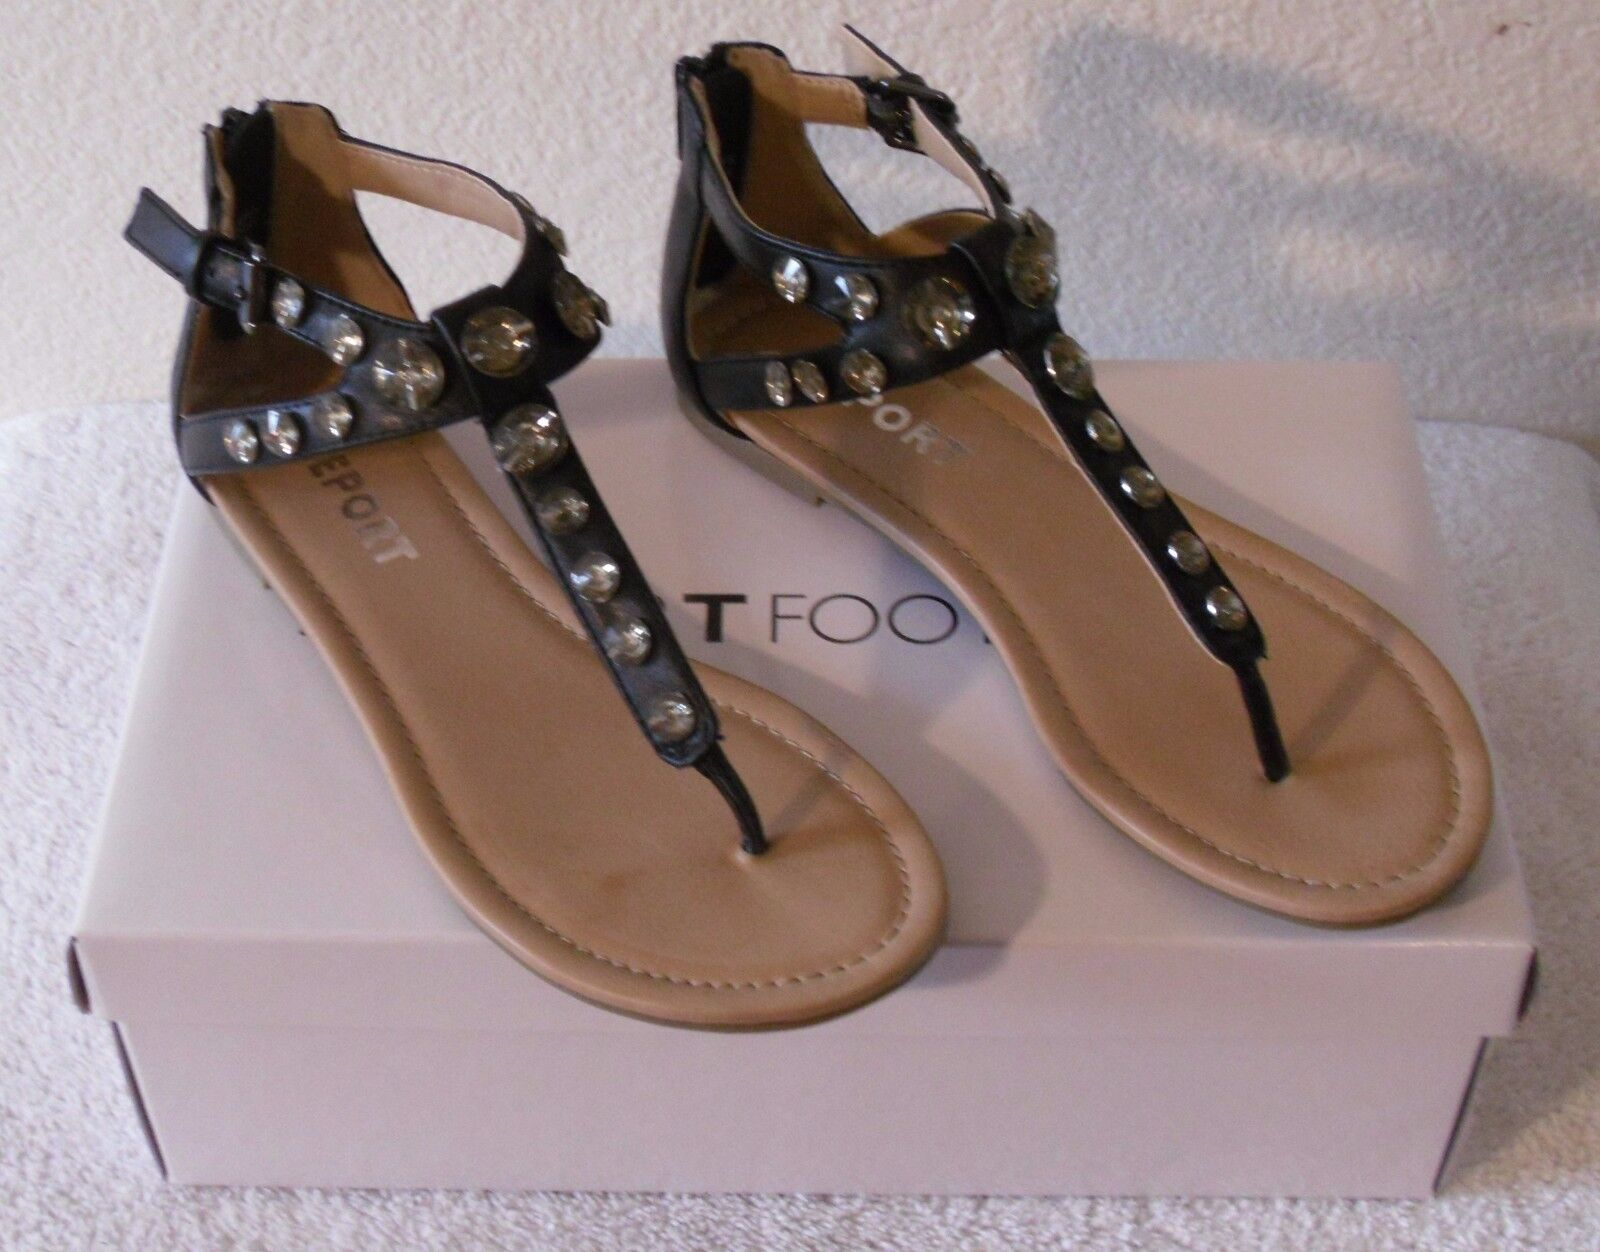 NIB REPORT Gizelle 6.5 Womens T-Strap Sandals 6.5 Gizelle Black MSRP$50 b5df70